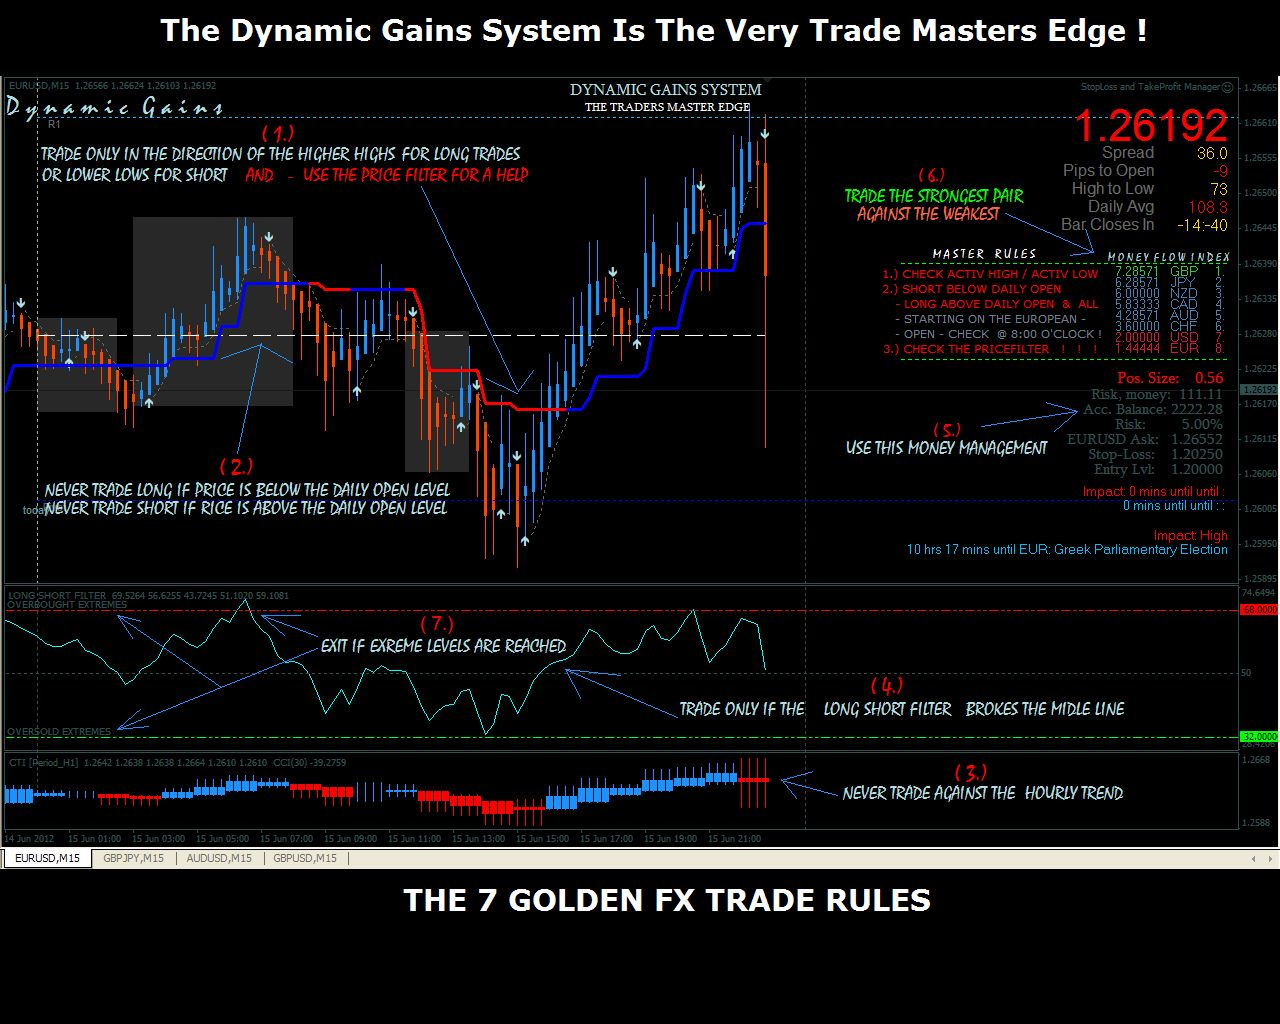 THE 7 DYNAMIC GAINS SYSTEM - TRADING  RULES